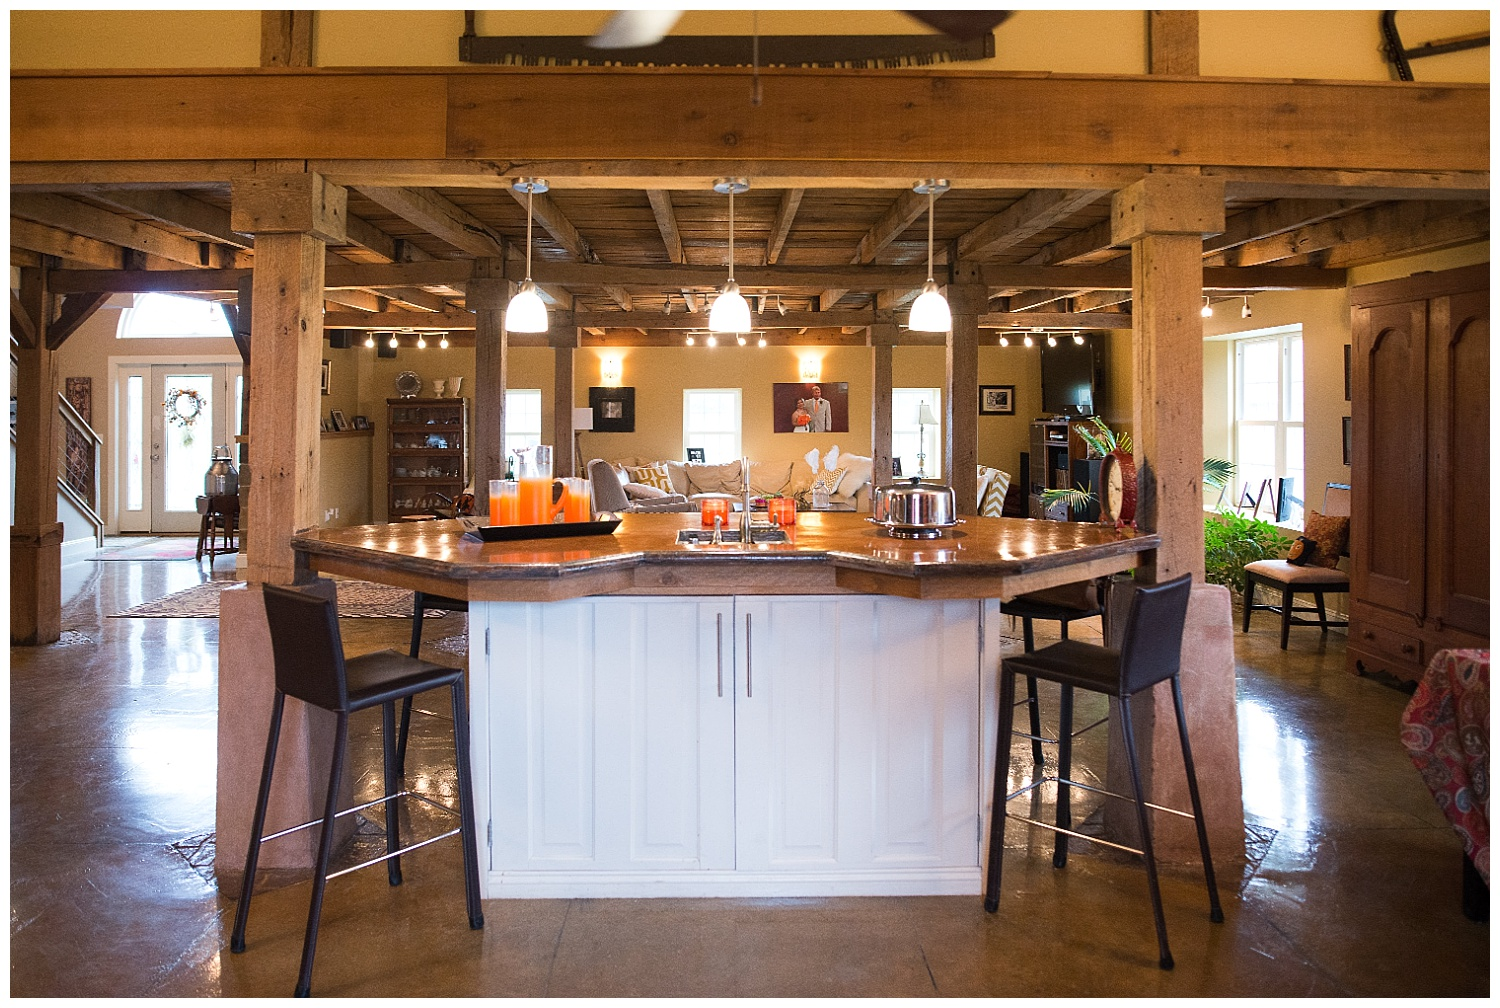 Here are the old farmhouse doors reimagined.  And check out the concrete counter.